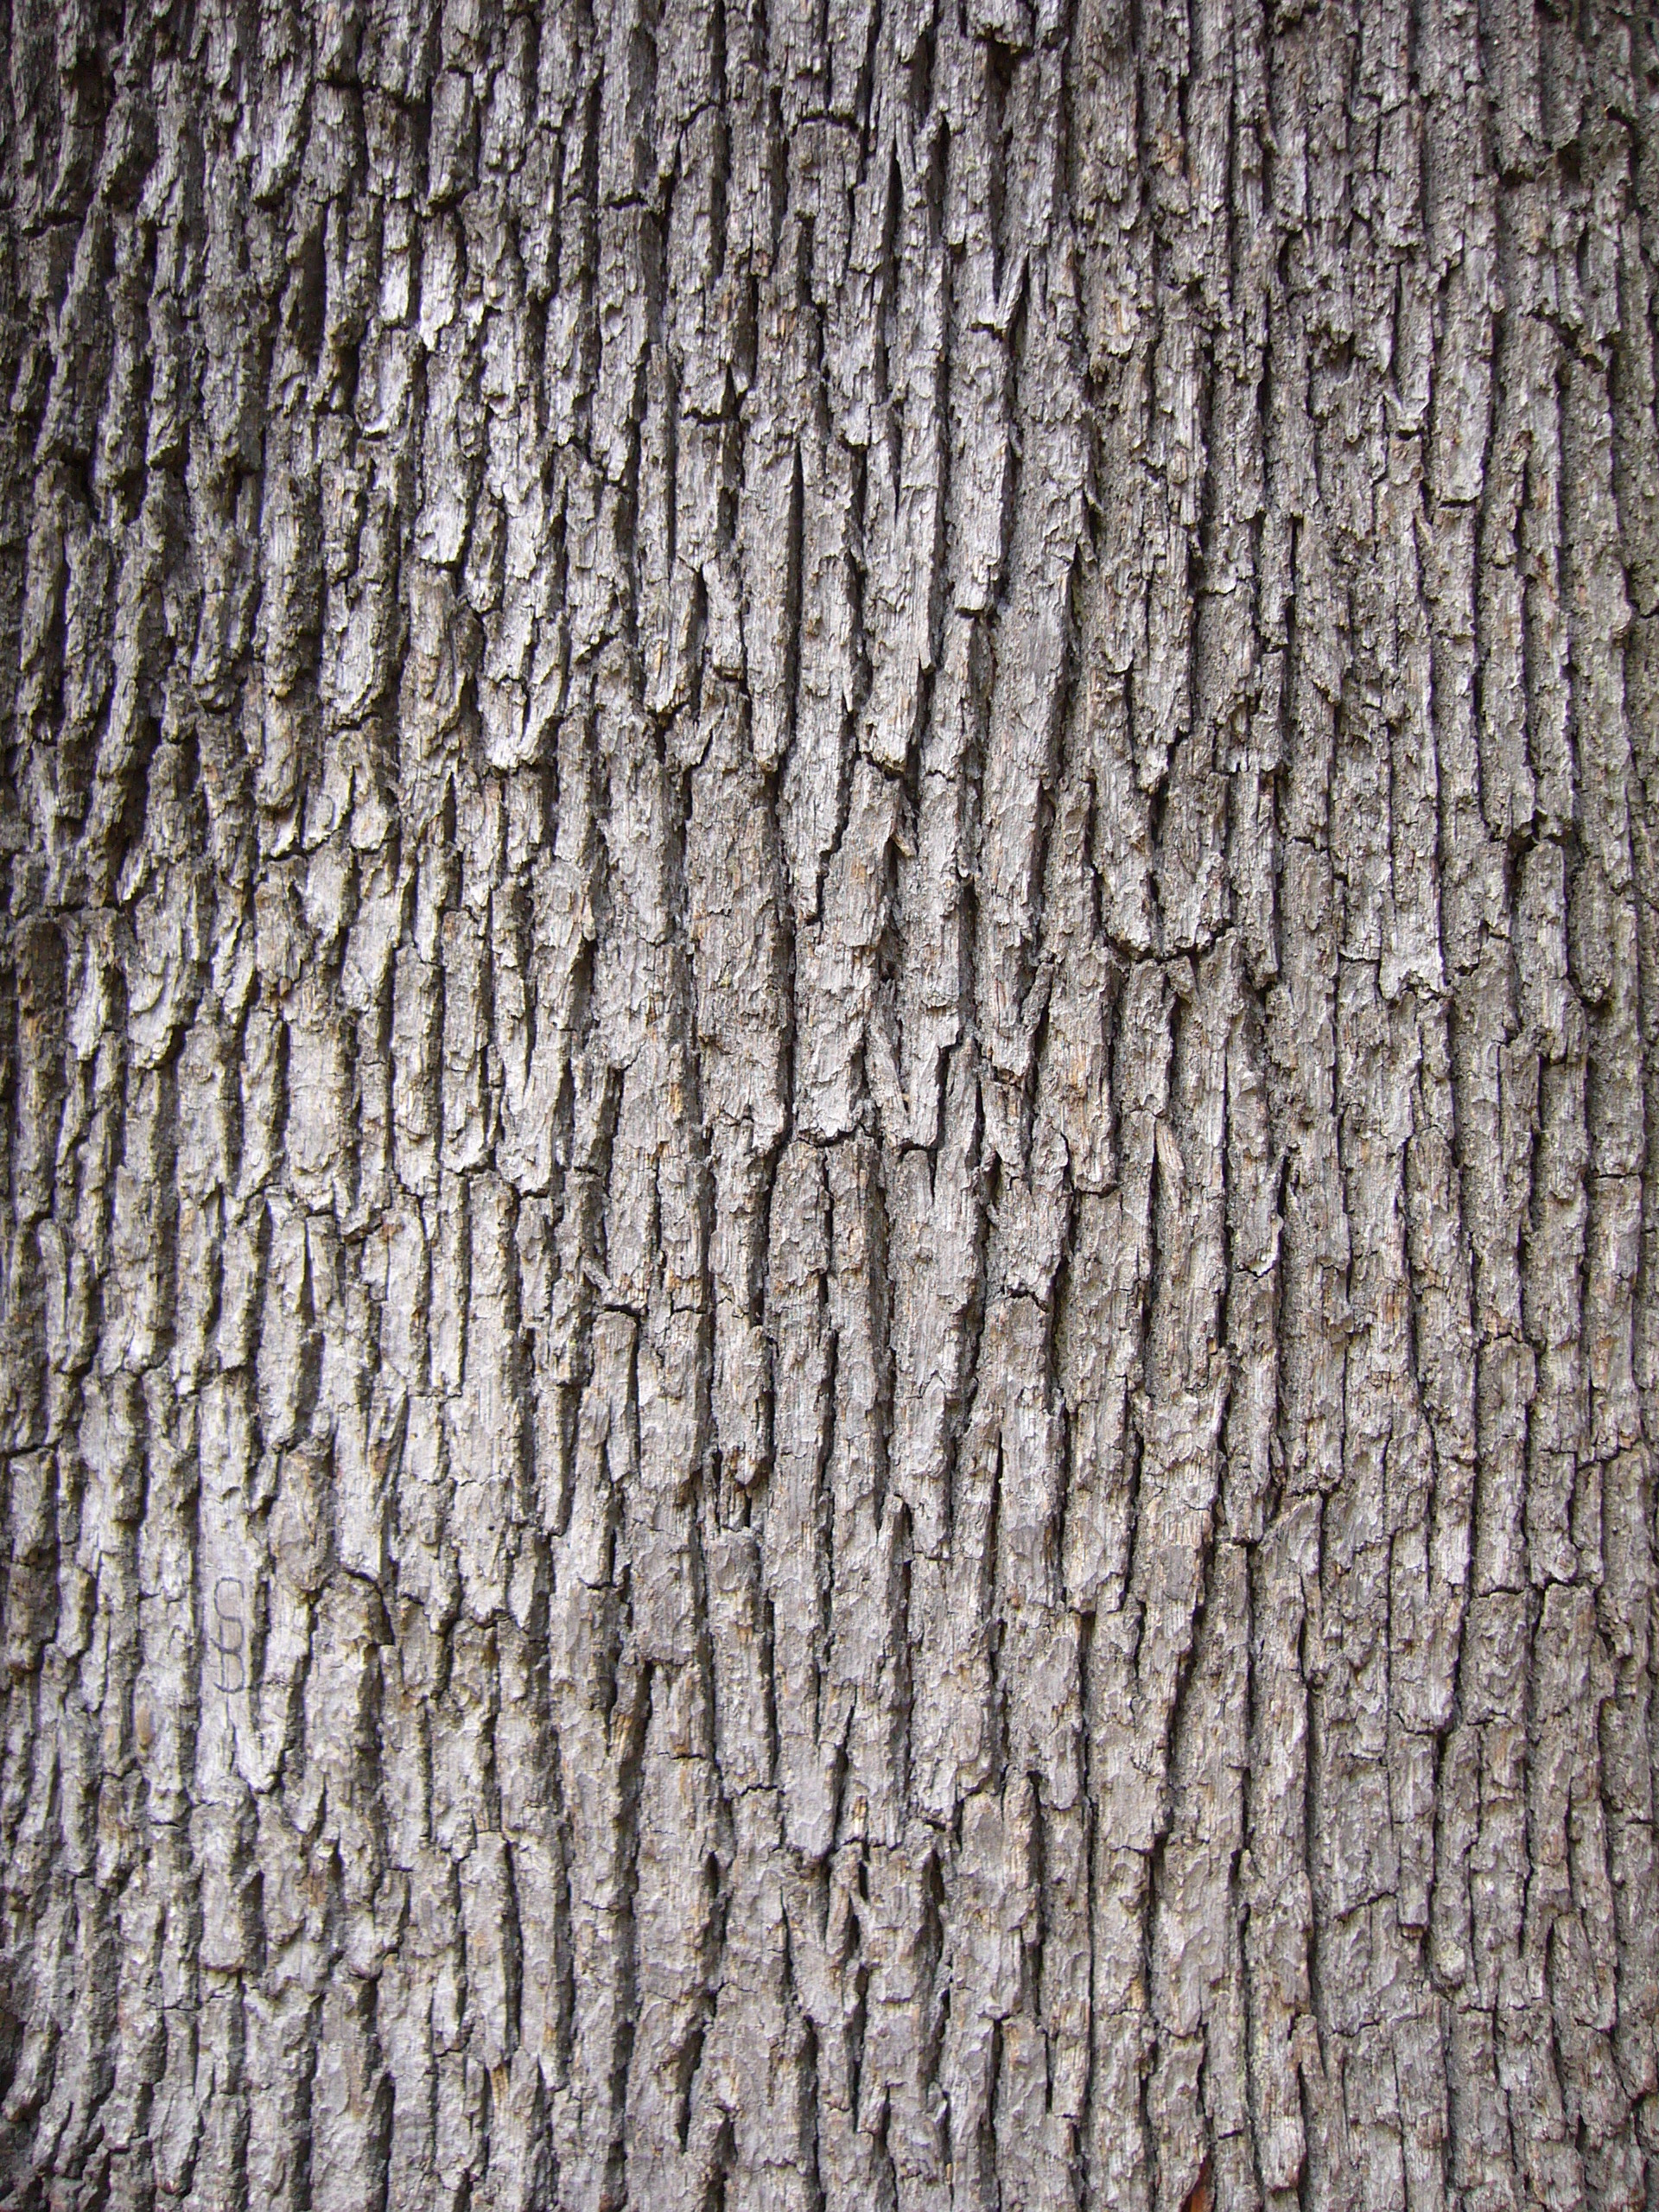 Tree bark photo